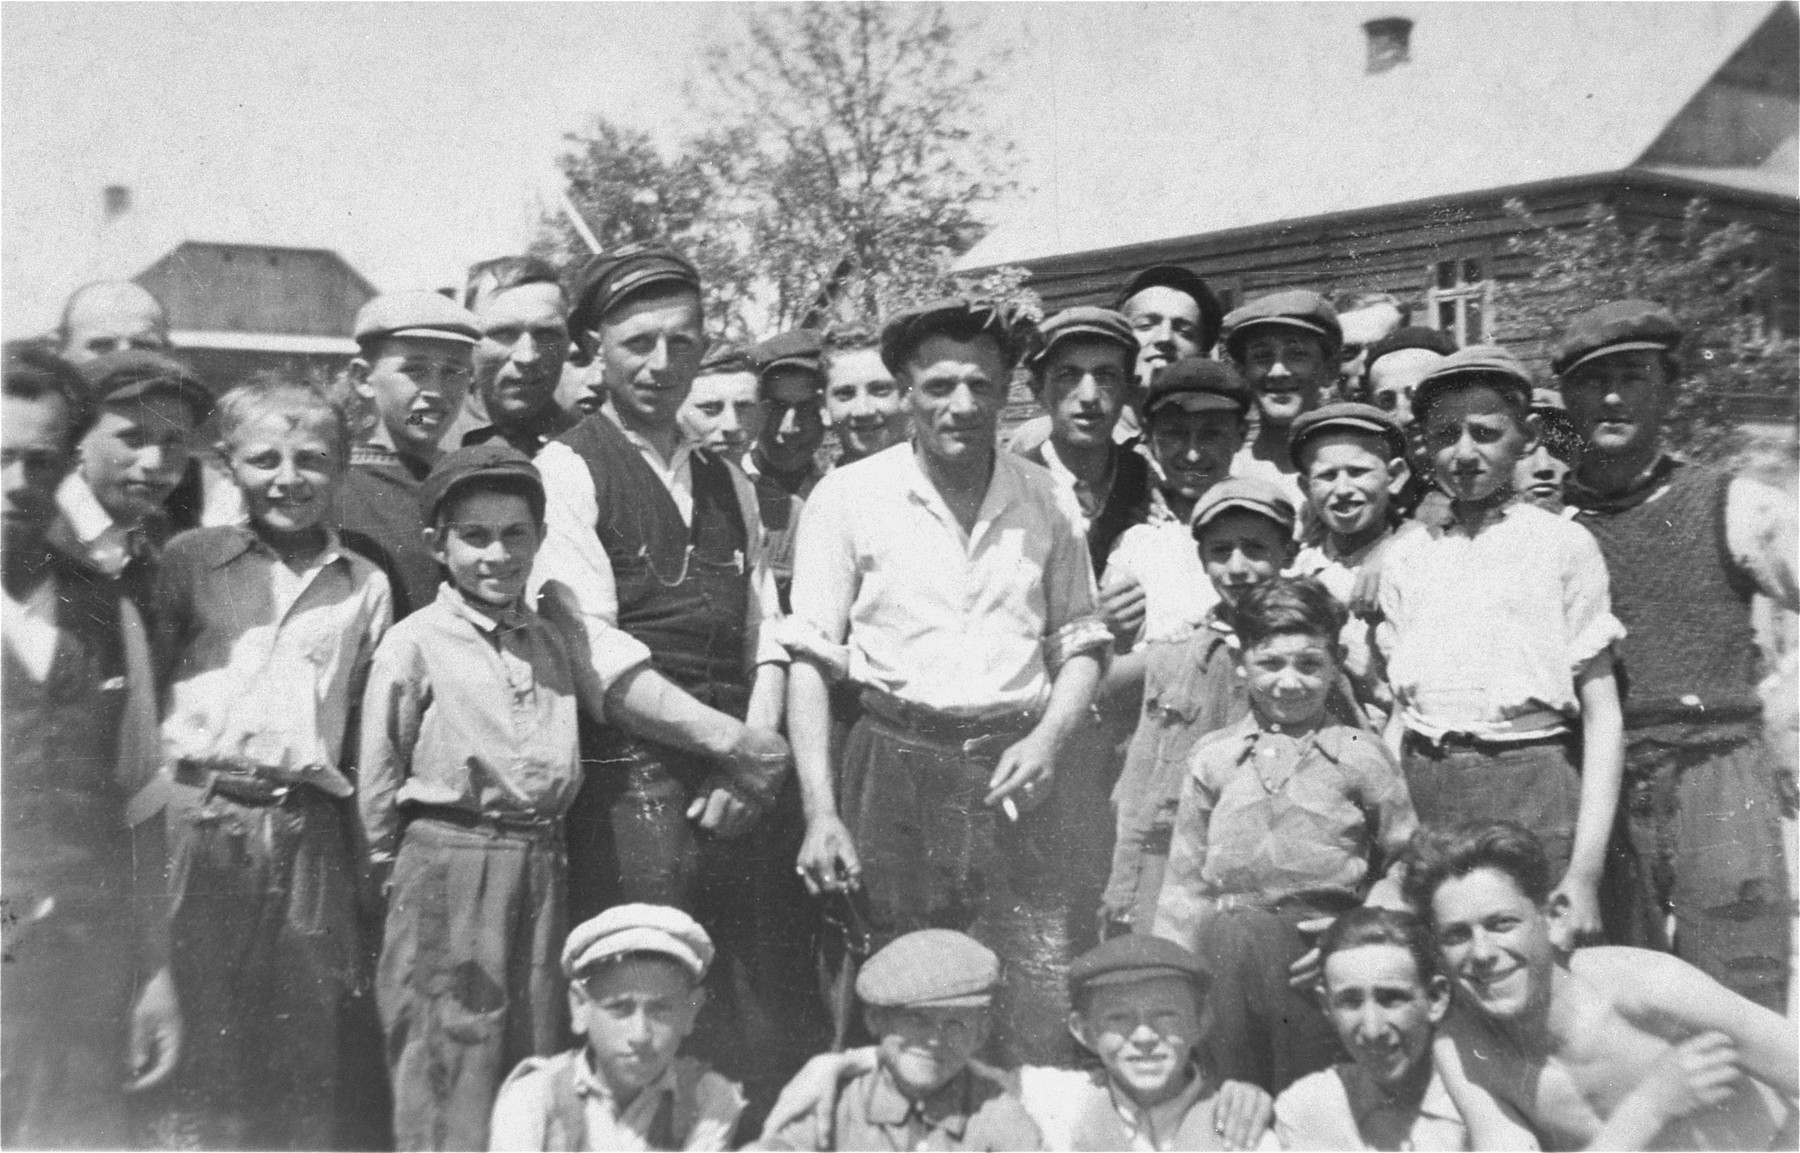 Group portrait of Jewish men and children in the Kolbuszowa ghetto.